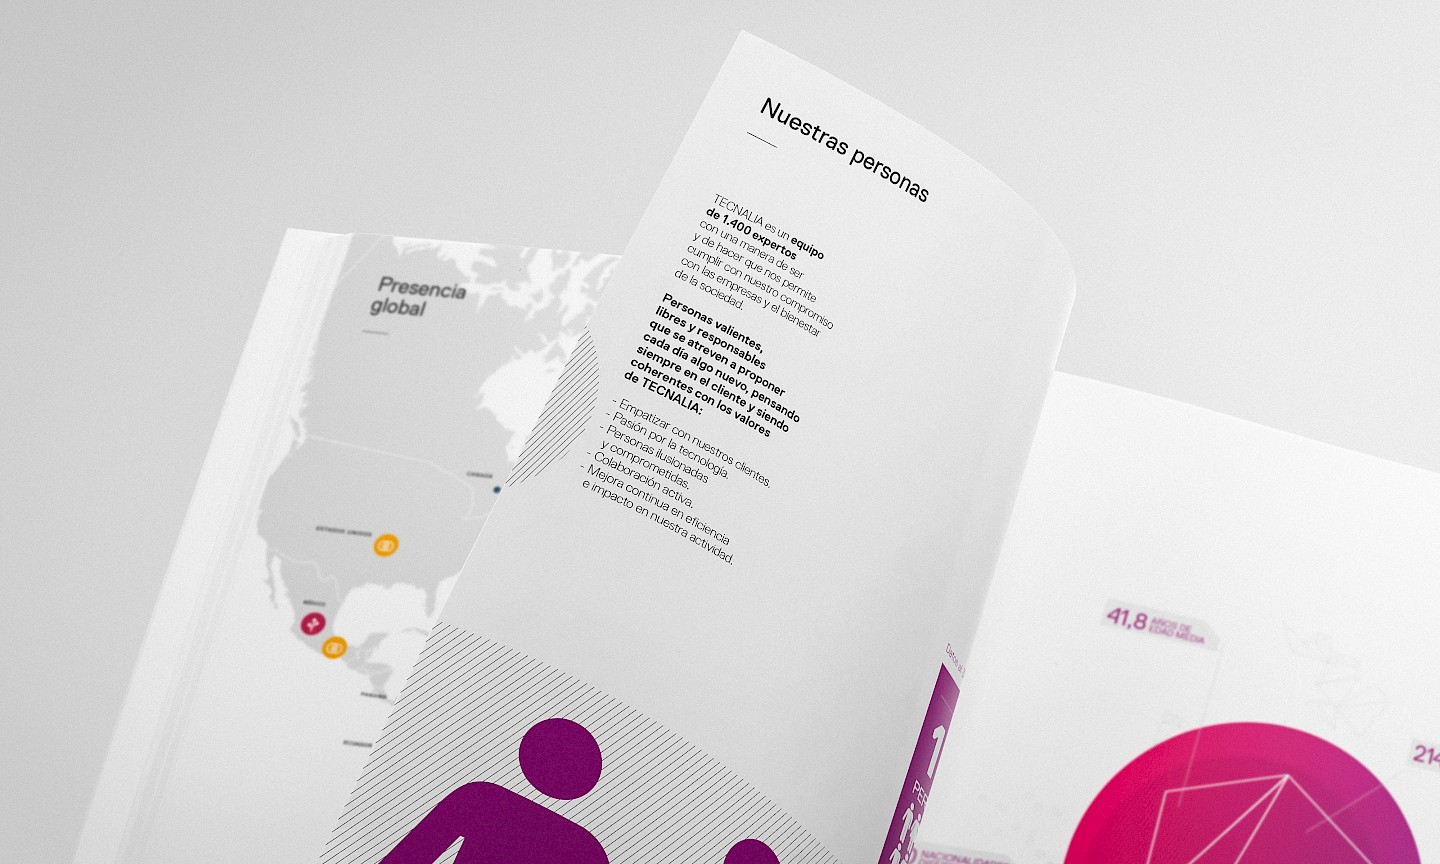 app print tecnalia branding move design technology 04 digital engineering